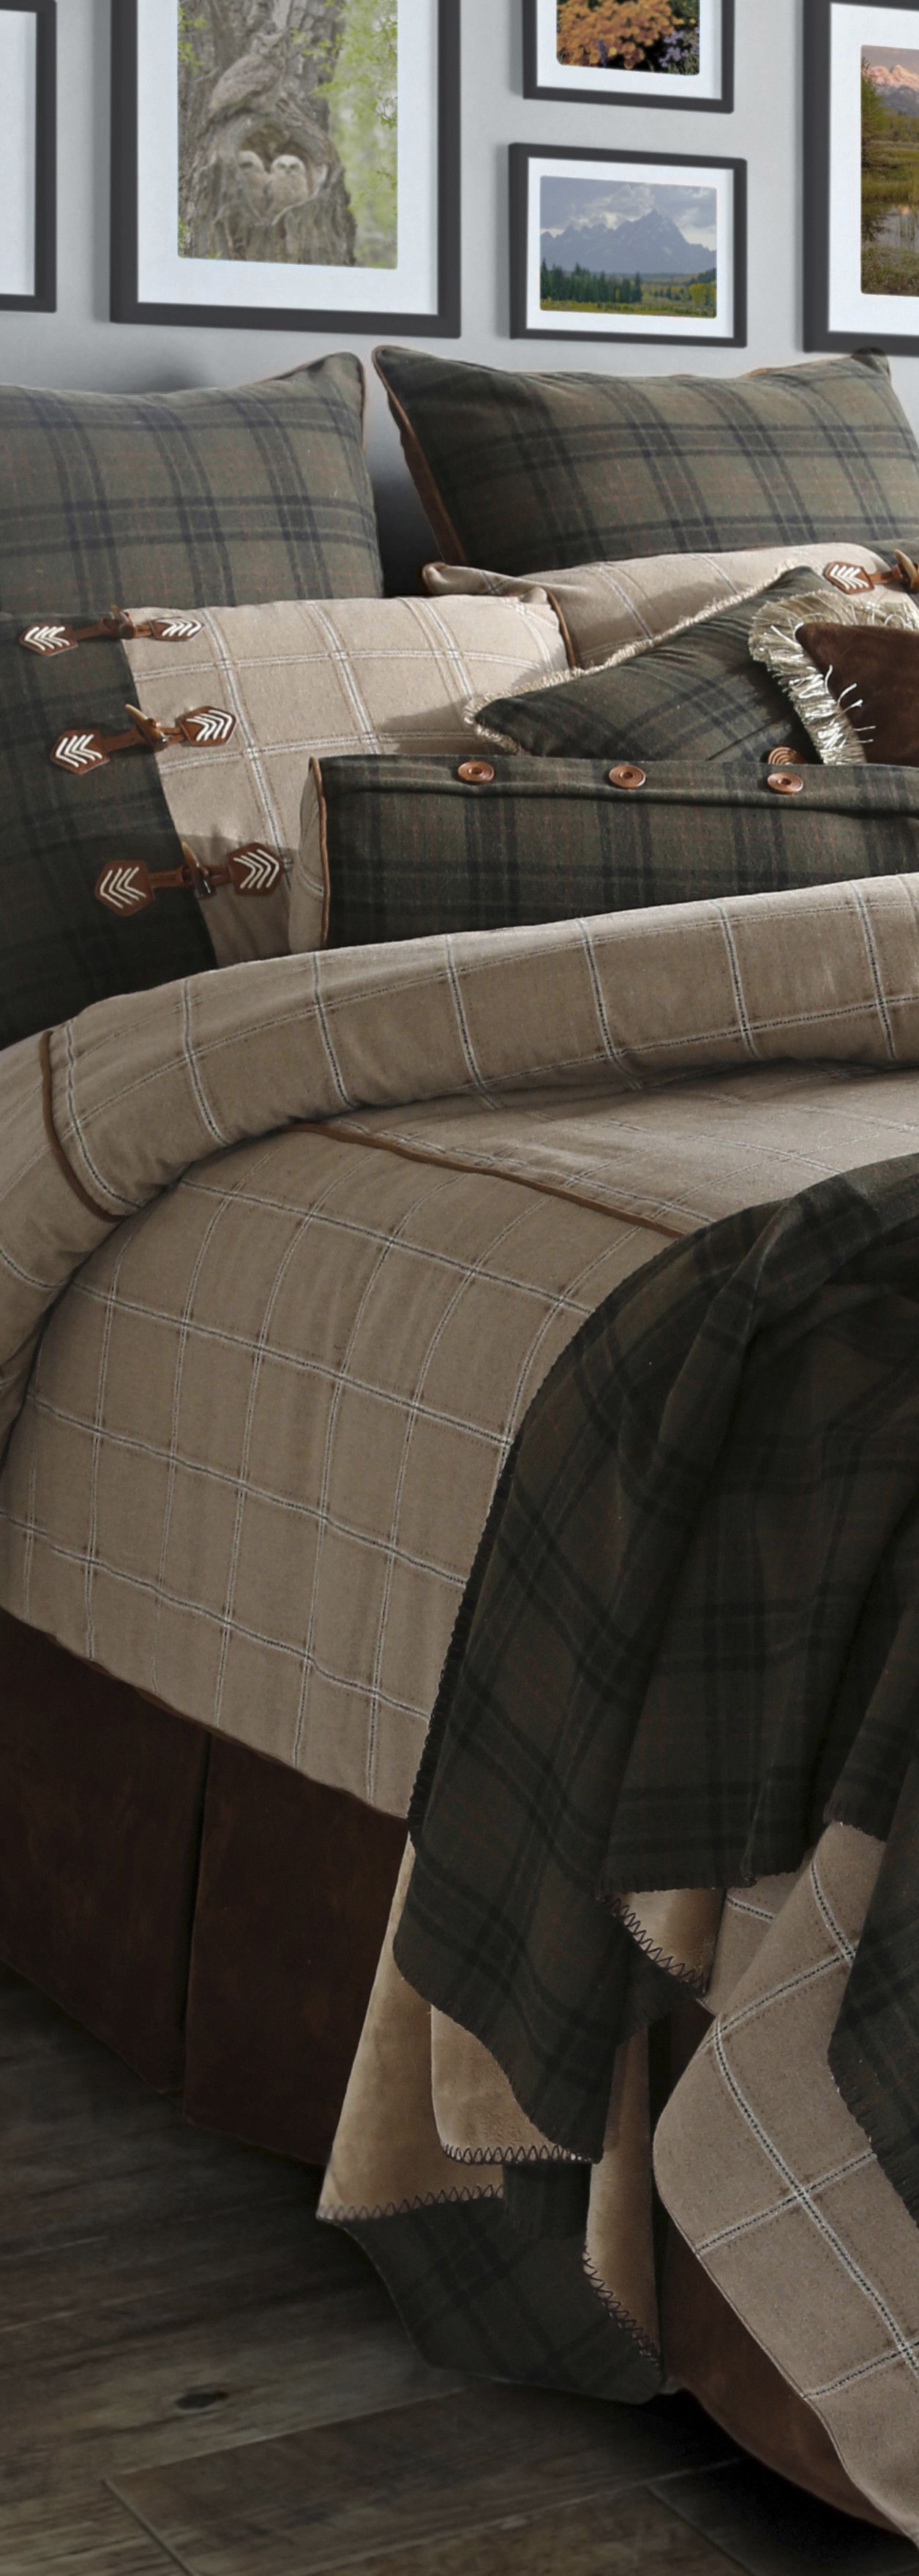 index piece bedding woods ensembles and bedroom ensemble in luxury set bayfield cfm rustic comforter comforters the bear cabin